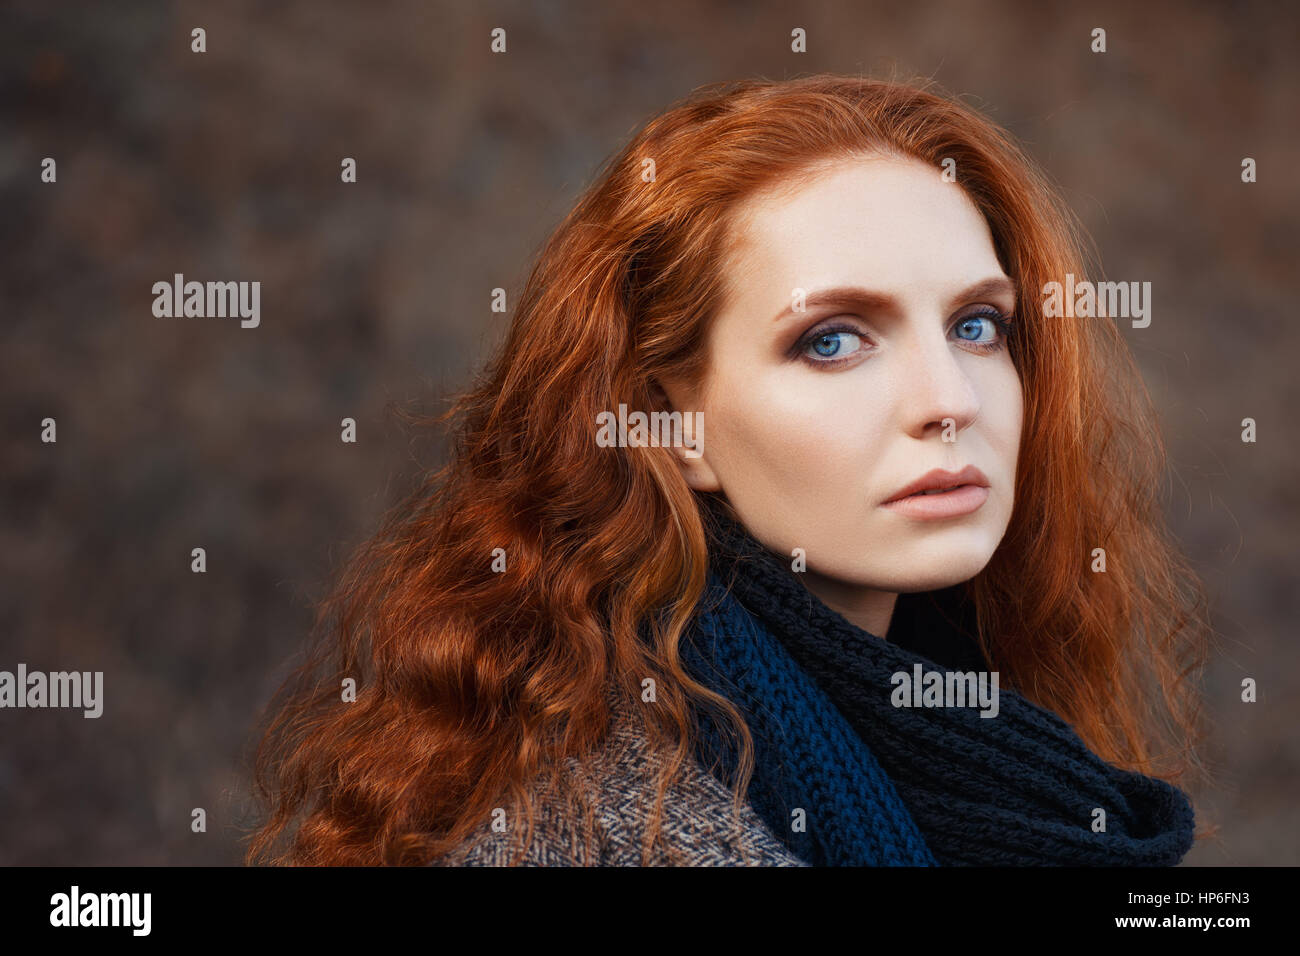 Redhead girl with red eyes well